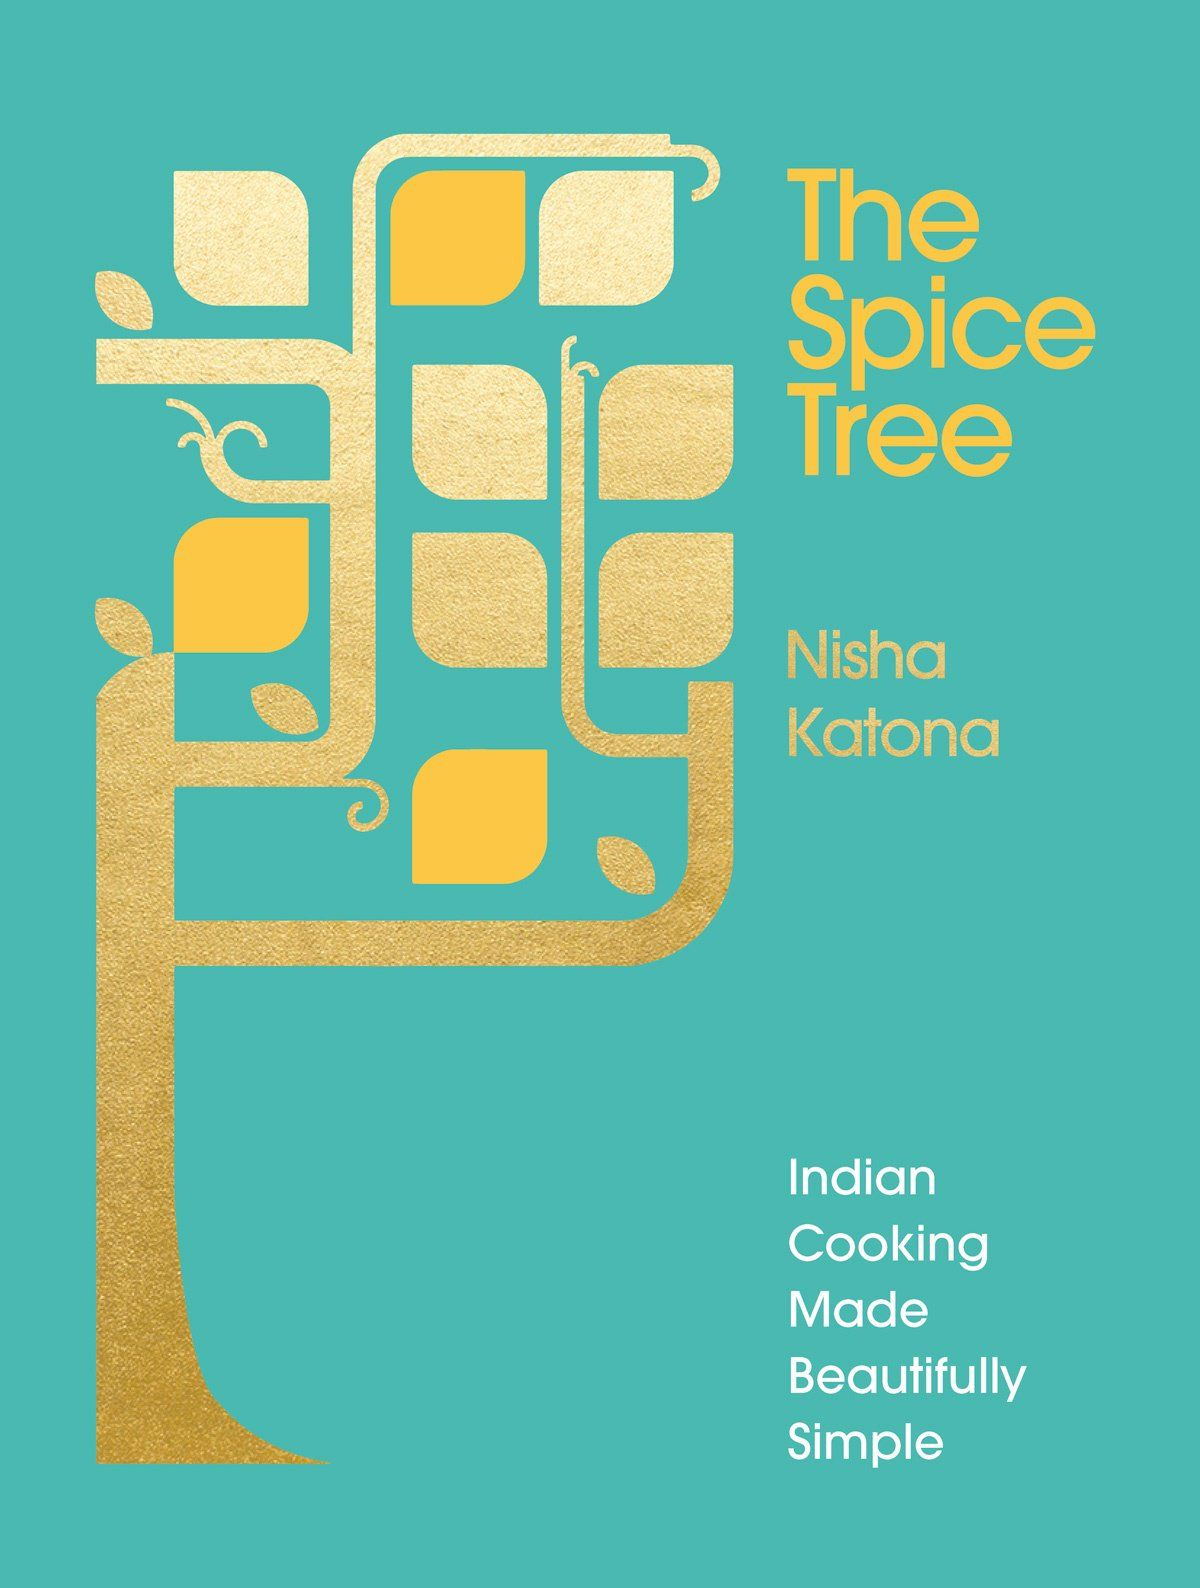 The Spice Tree by Nisha Katona: There's something very touching about the way Nisha Katona explains, in her introduction to The Spice Tree, about how she first came to write this book on Indian spicing. It is, she says, an important legacy for her daughters, a way she can pass on something essential of their ancient heritage.